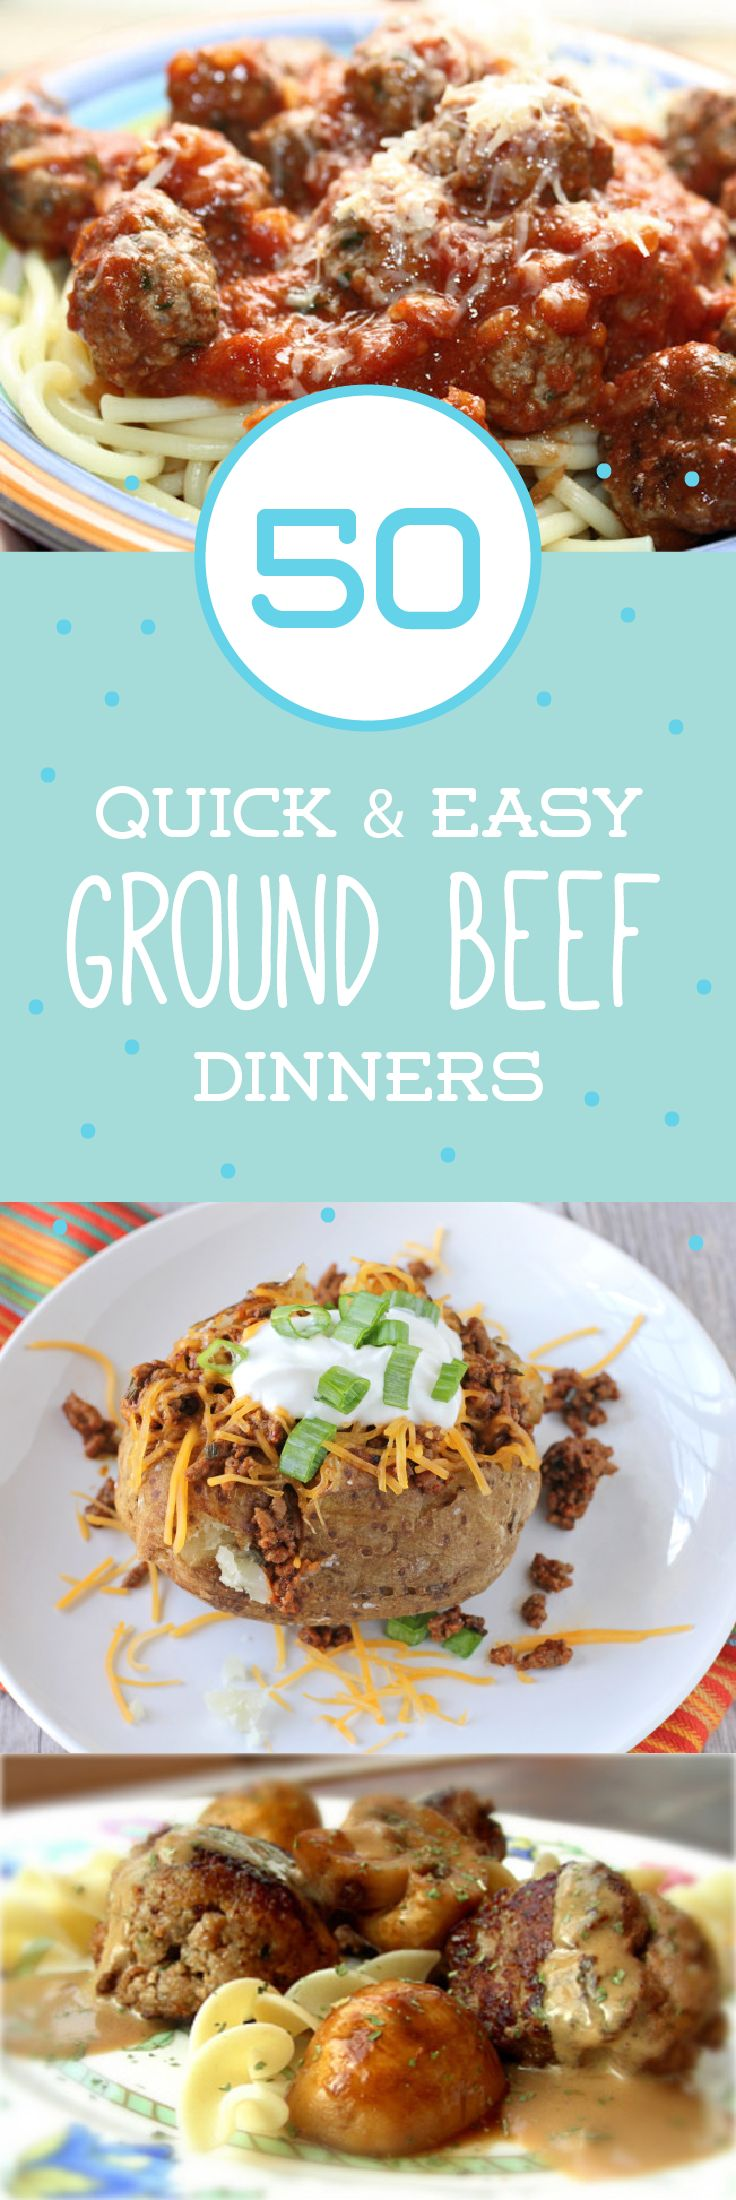 27 quick and easy ground beef dinners beef recipes for Quick and easy dinner ideas with hamburger meat